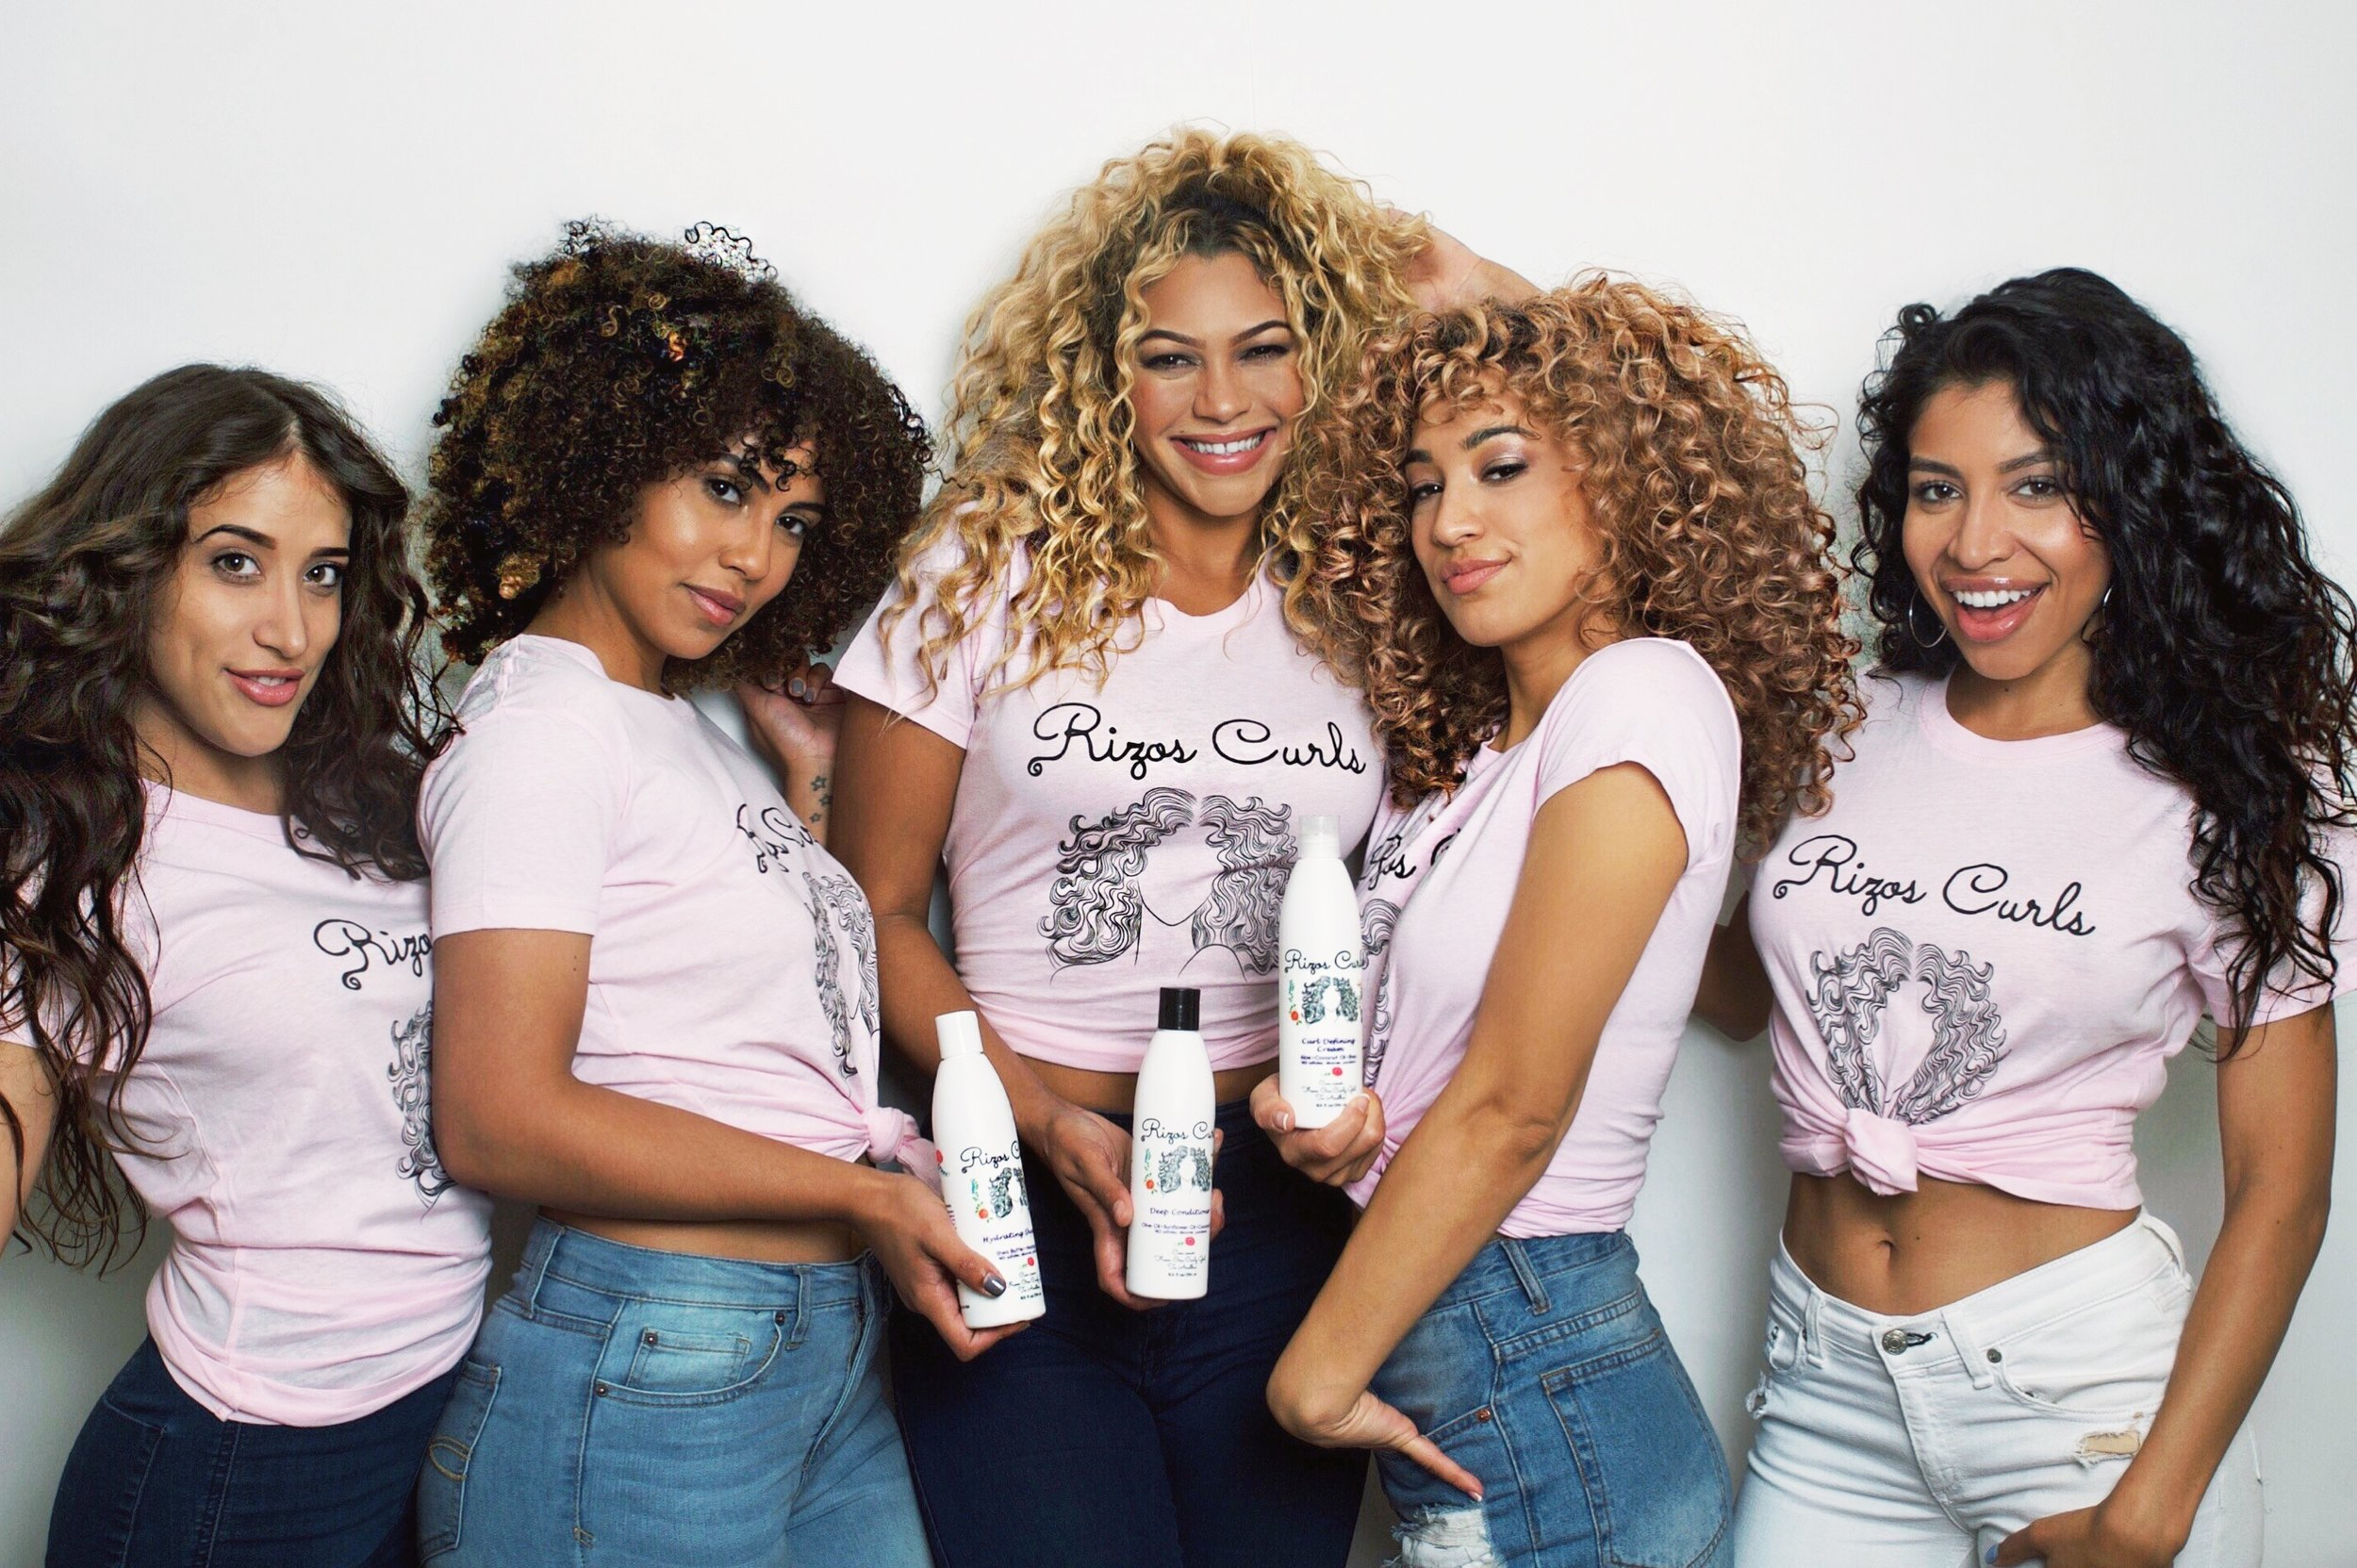 RIZOS CURLS product review